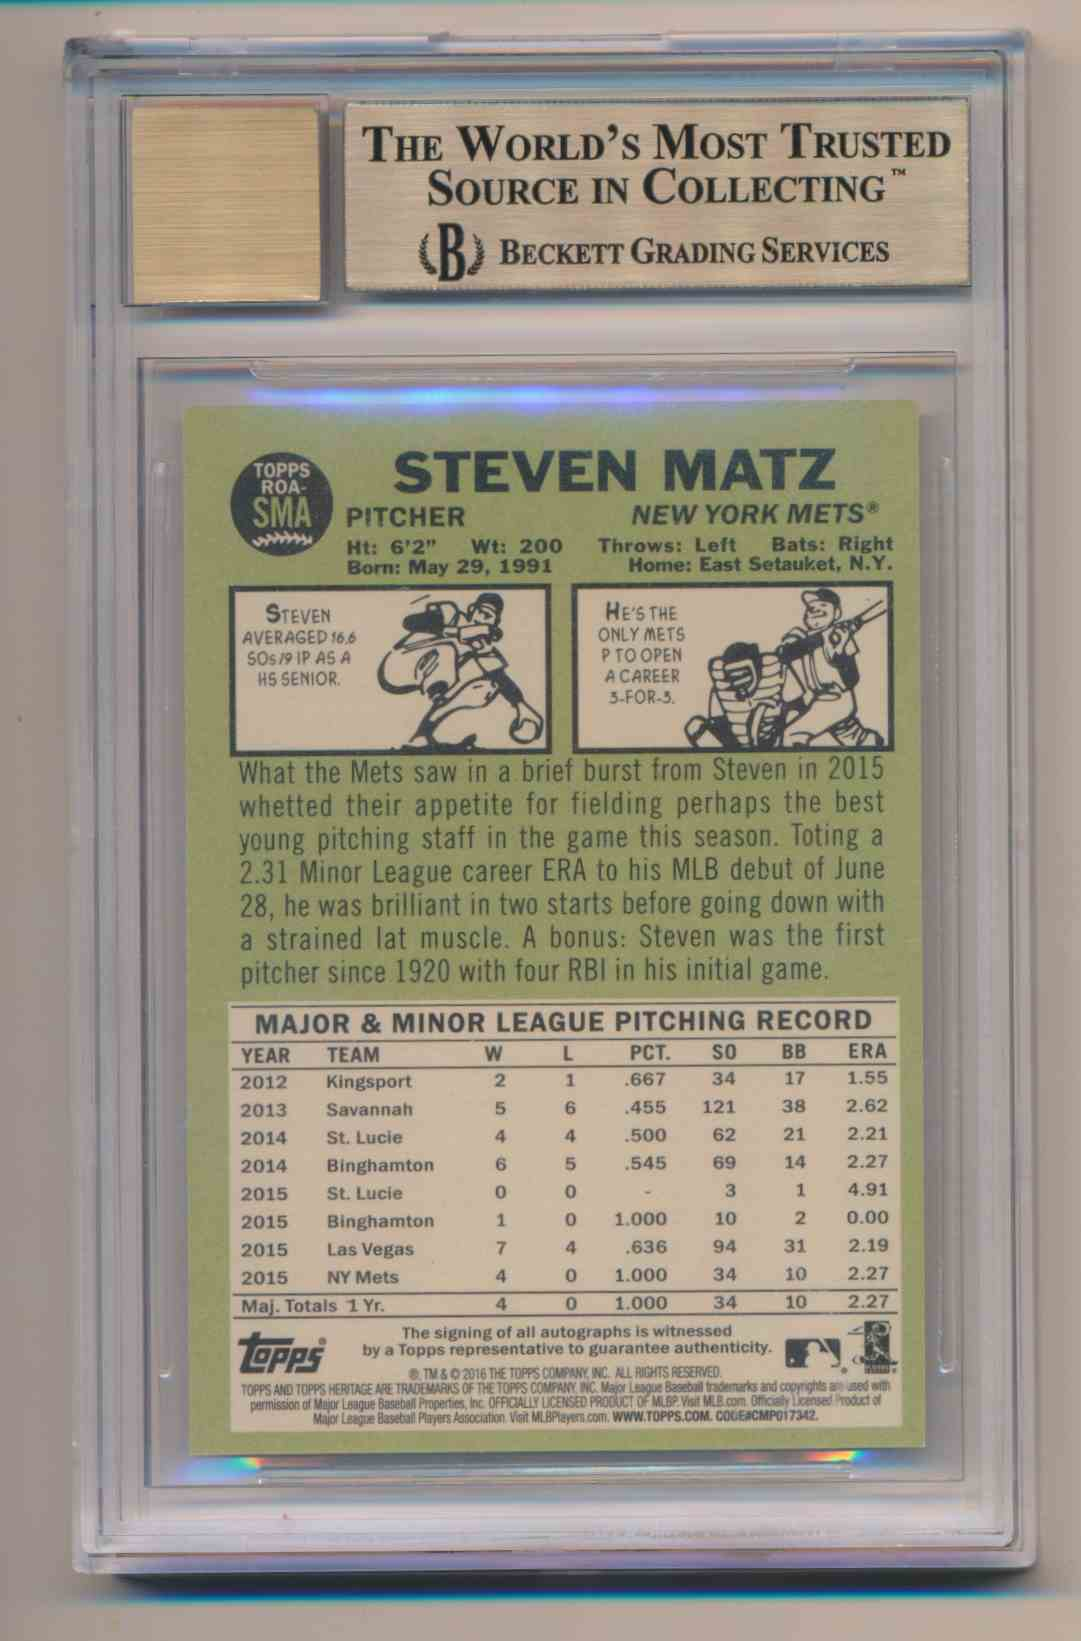 2016 Topps Heritage BGS 9.5 10 Auto Steve Matz Red Ink card back image